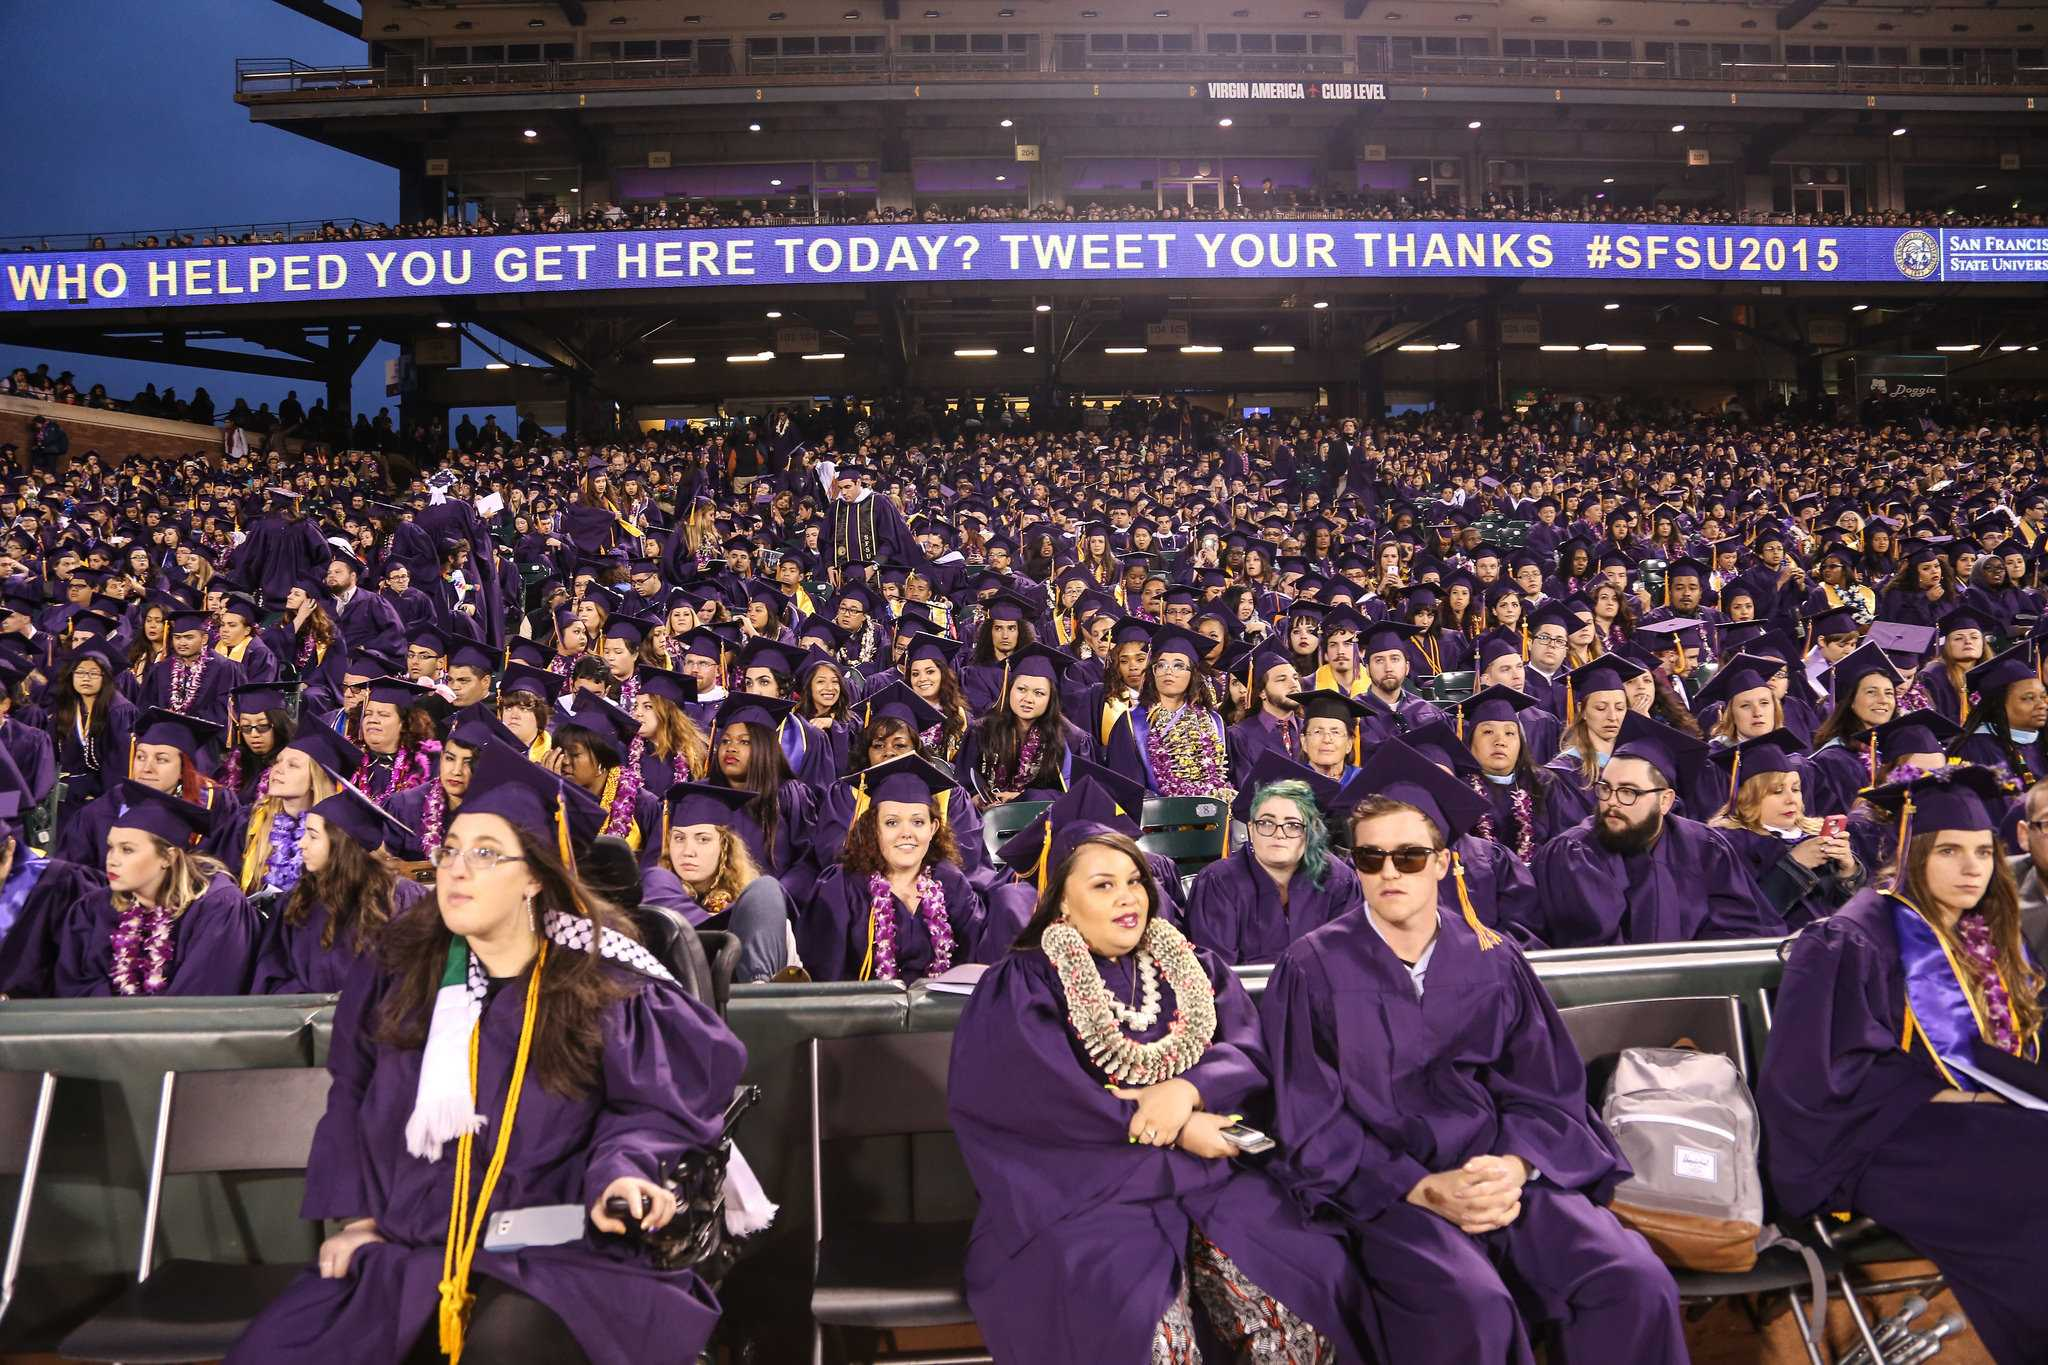 SF State gives a Giant farewell to graduating class of 2015